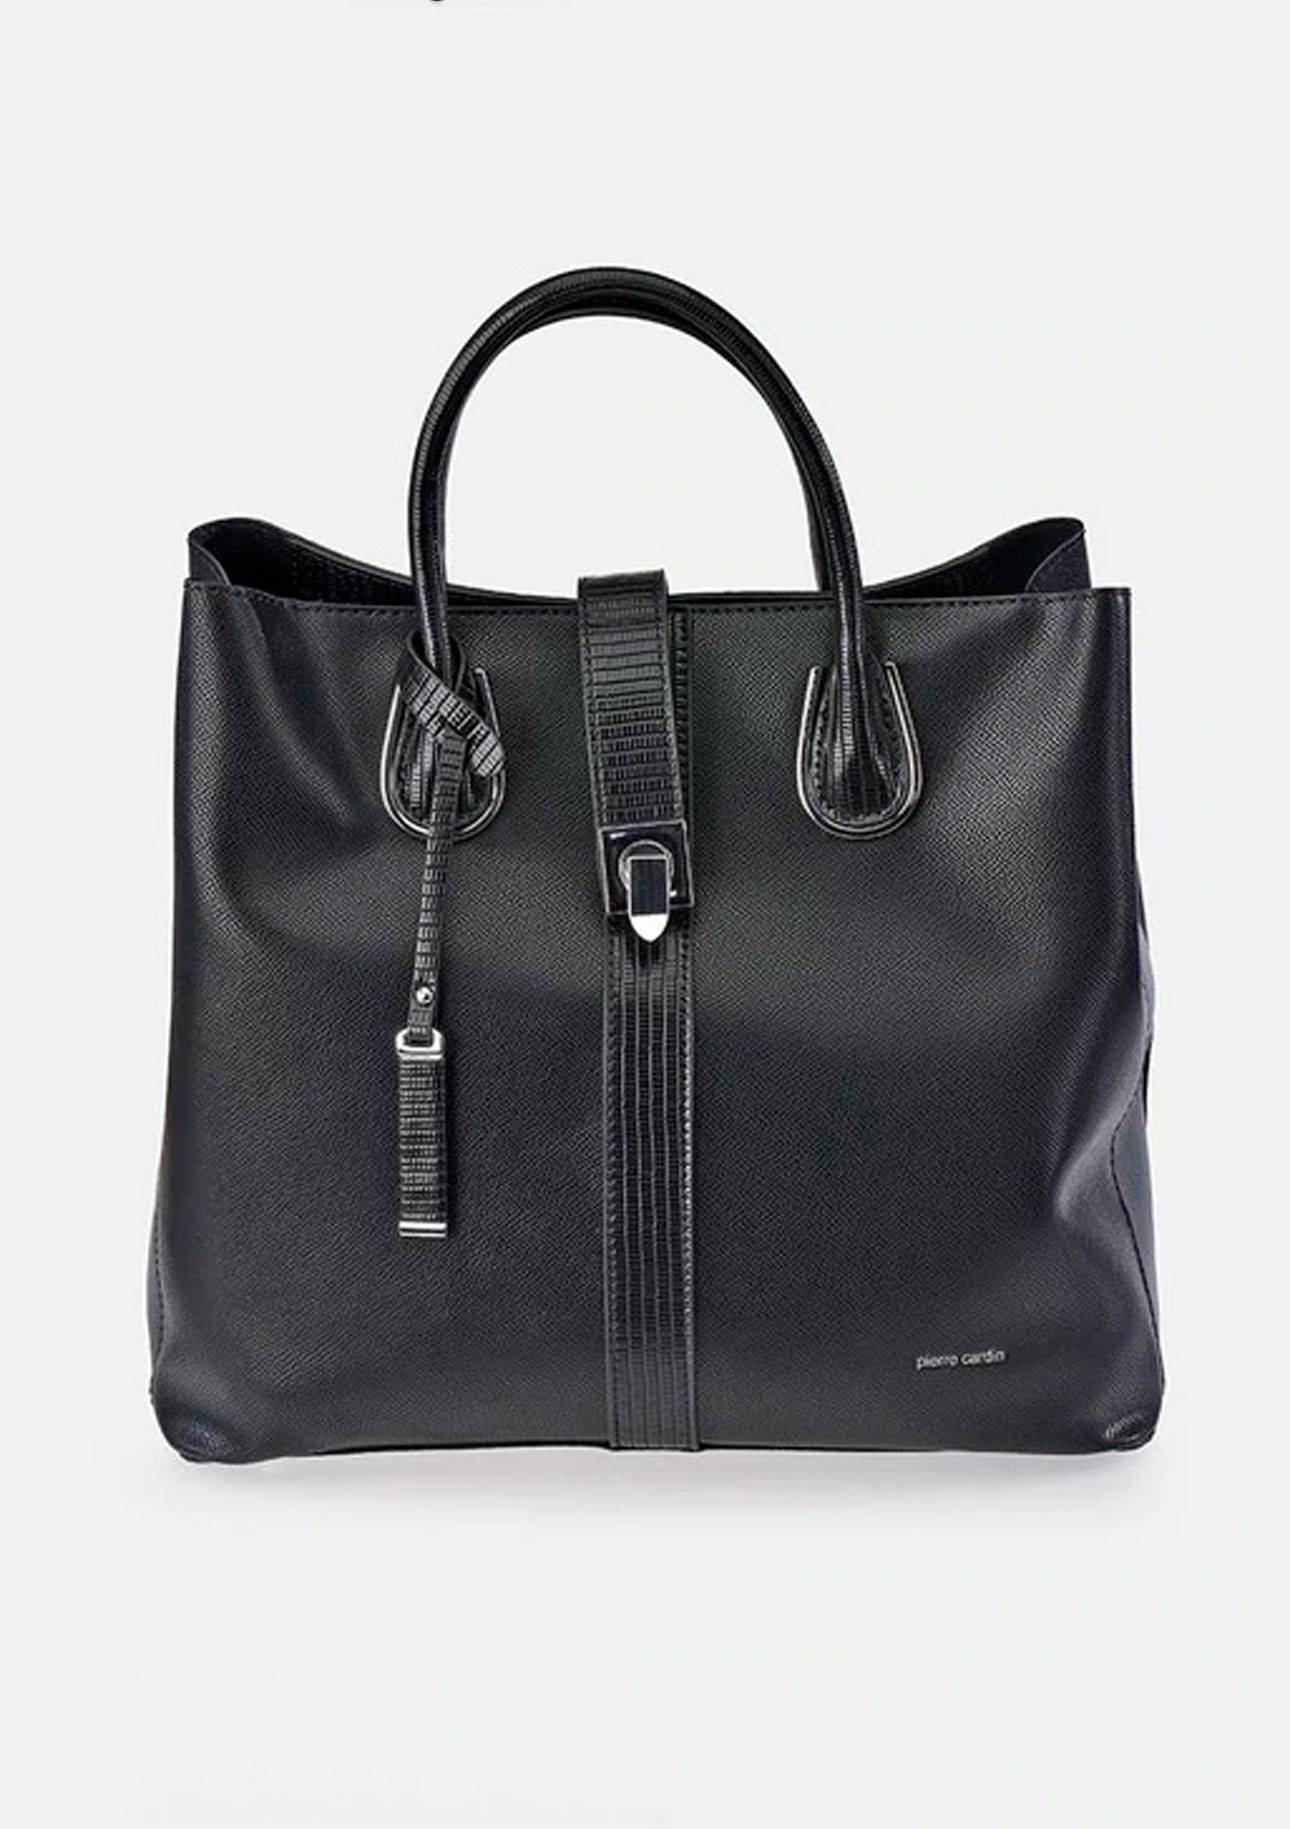 Bolso shopper de Pierre Cardin